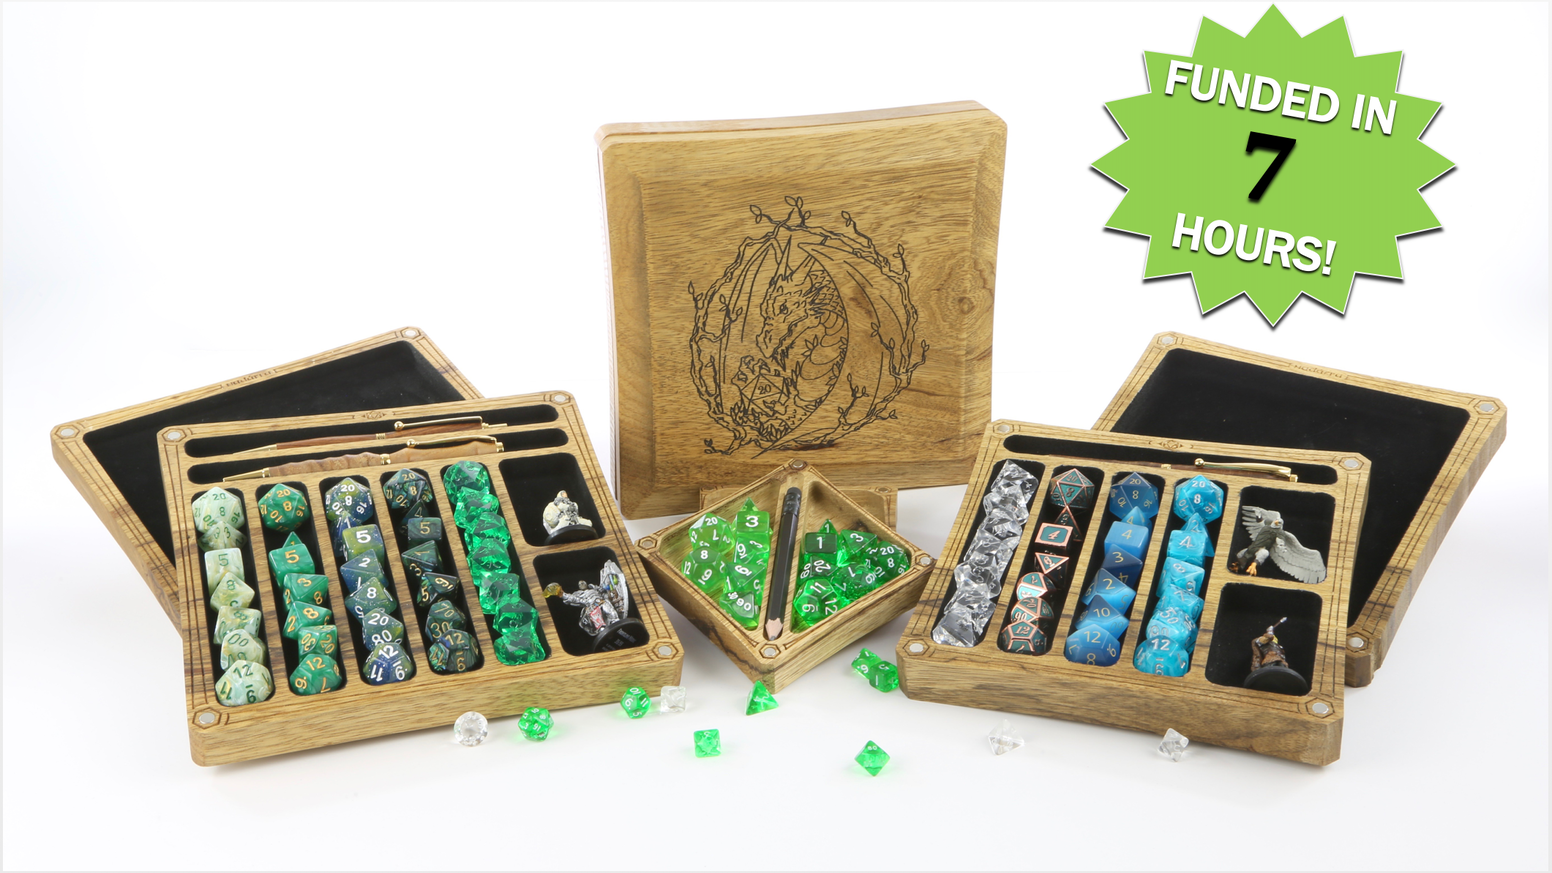 Masterfully crafted, custom engraved dice boxes with integral rolling tray designed to enhance your tabletop gaming experience.